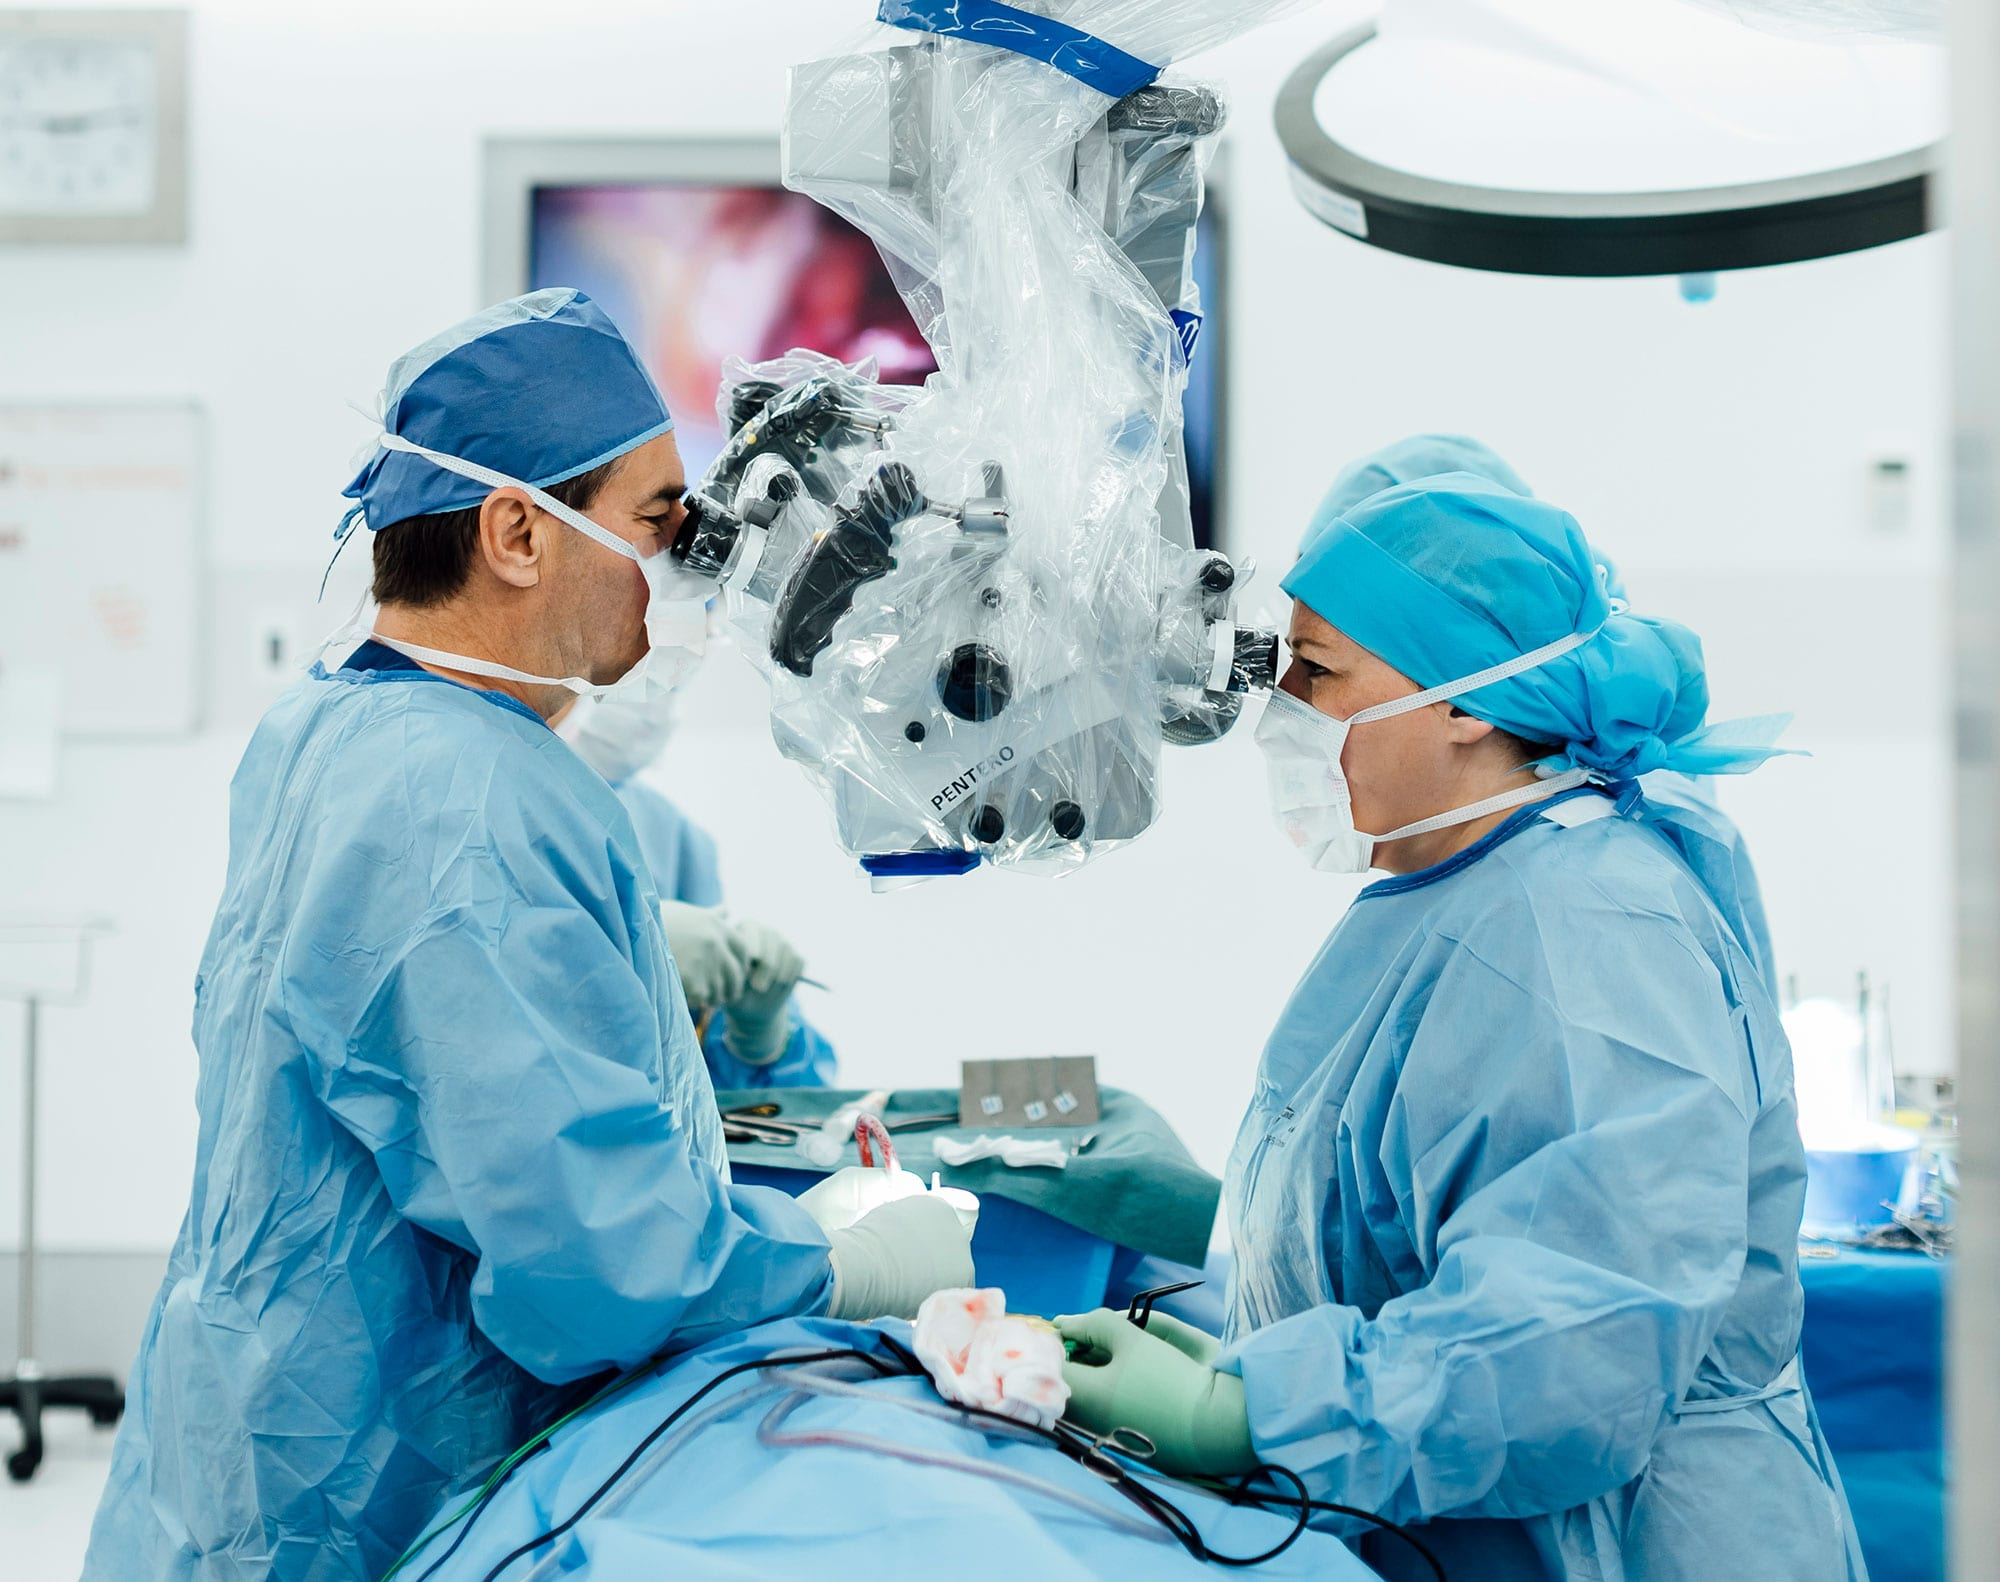 Bringing 4k To The OR: Working With The Zeiss TIVATO 700